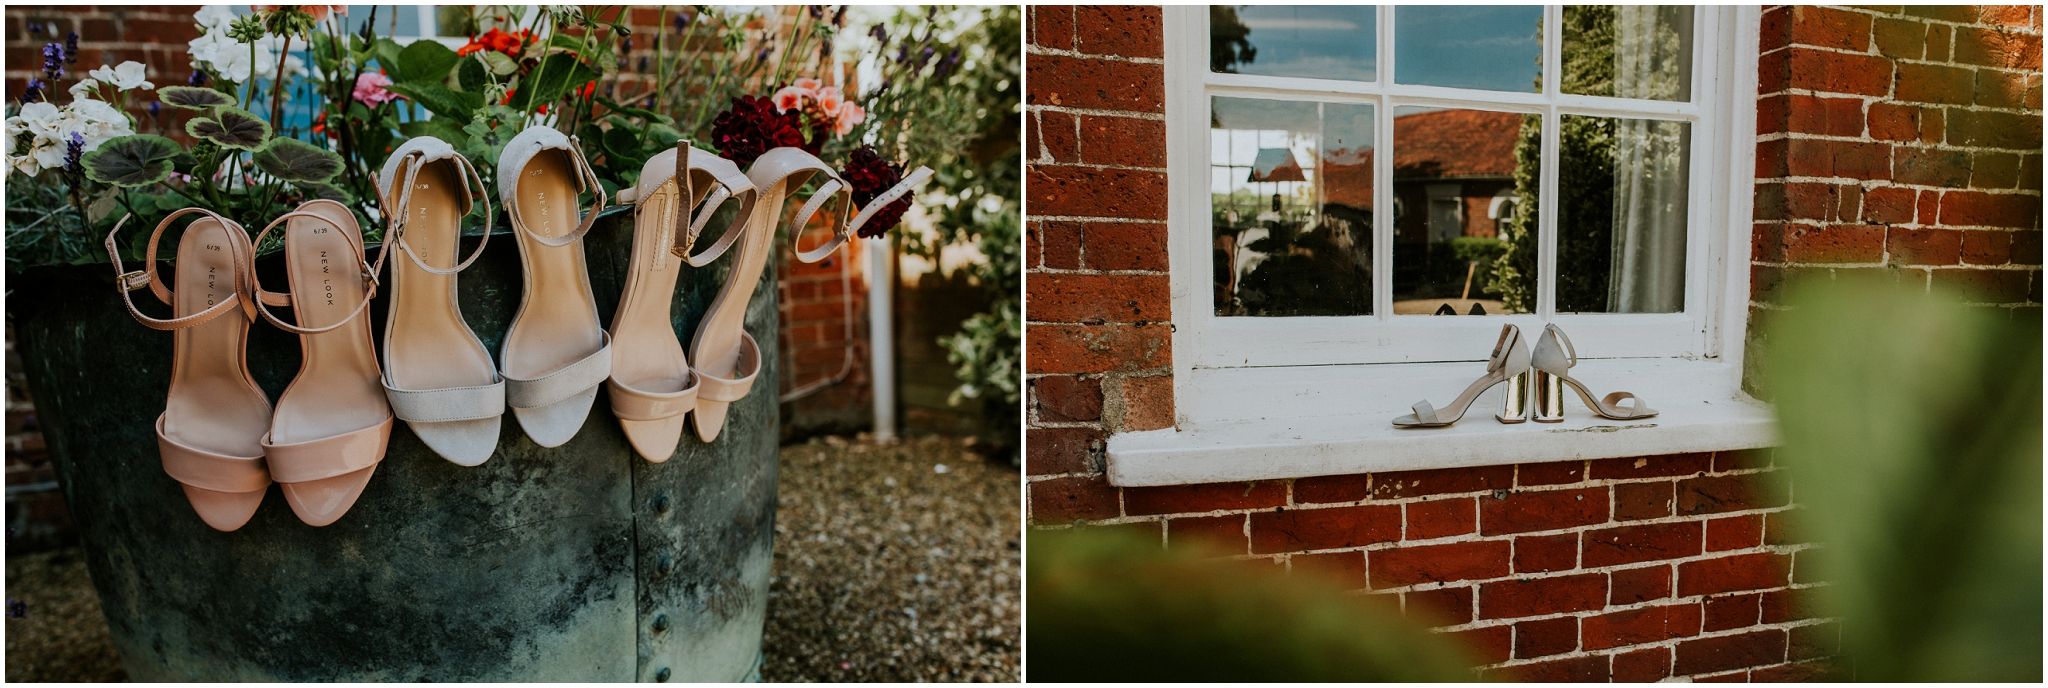 Bride and bridesmaids wedding shoes barn at woodlands norfolk